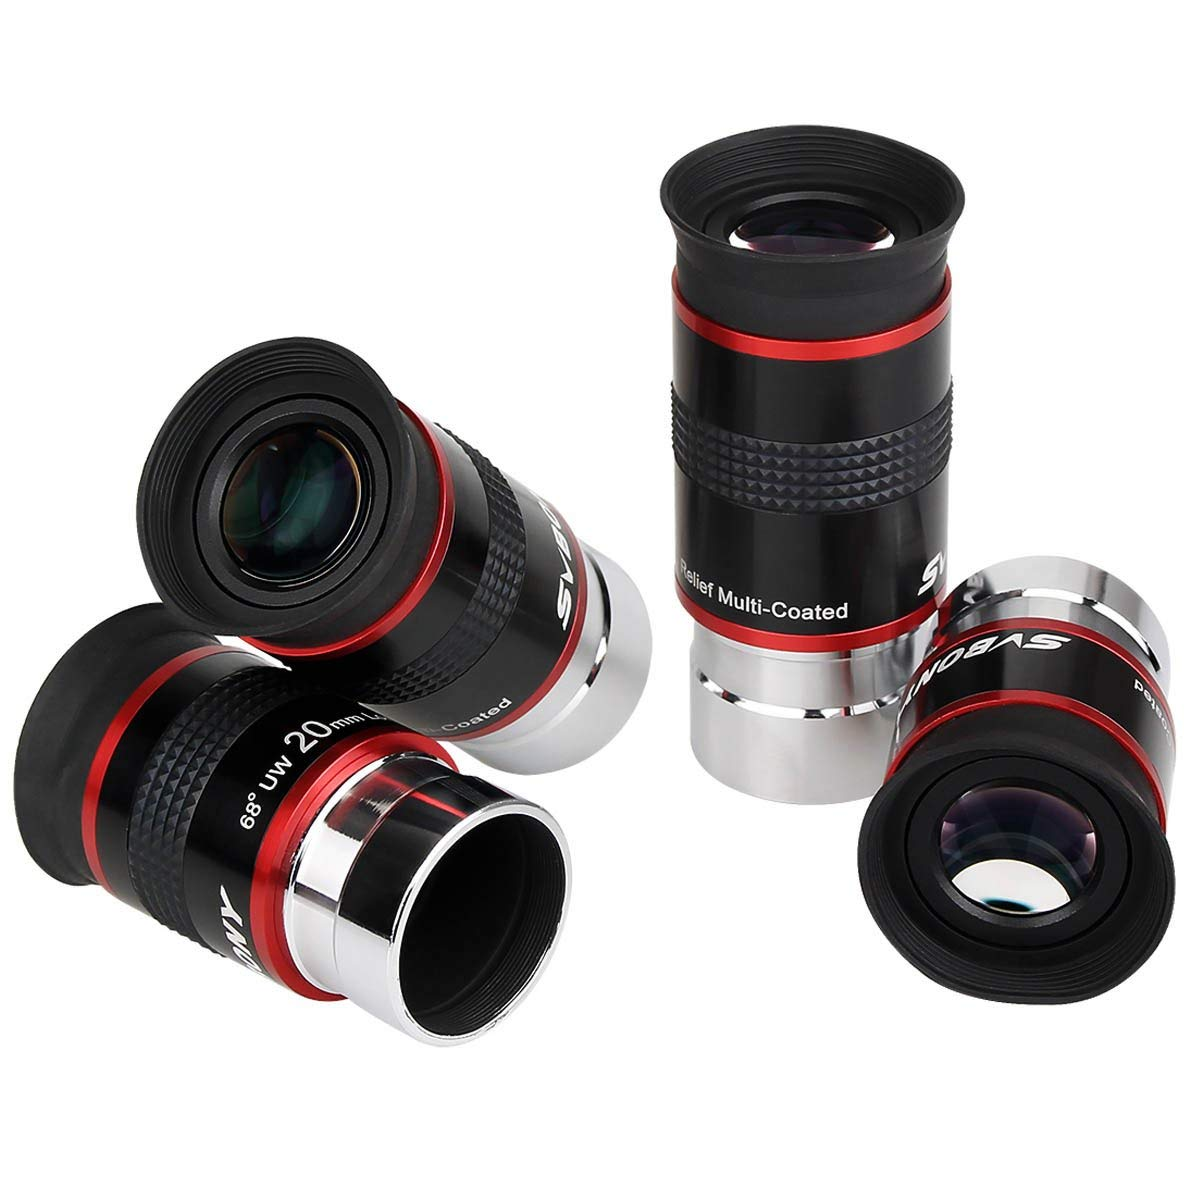 15MM 20MM 9MM 1.25INCH 68 Degree Wide Angle Eyepiece Planetary Eye Lens Astronomical Telescope Eyepiece 6MM